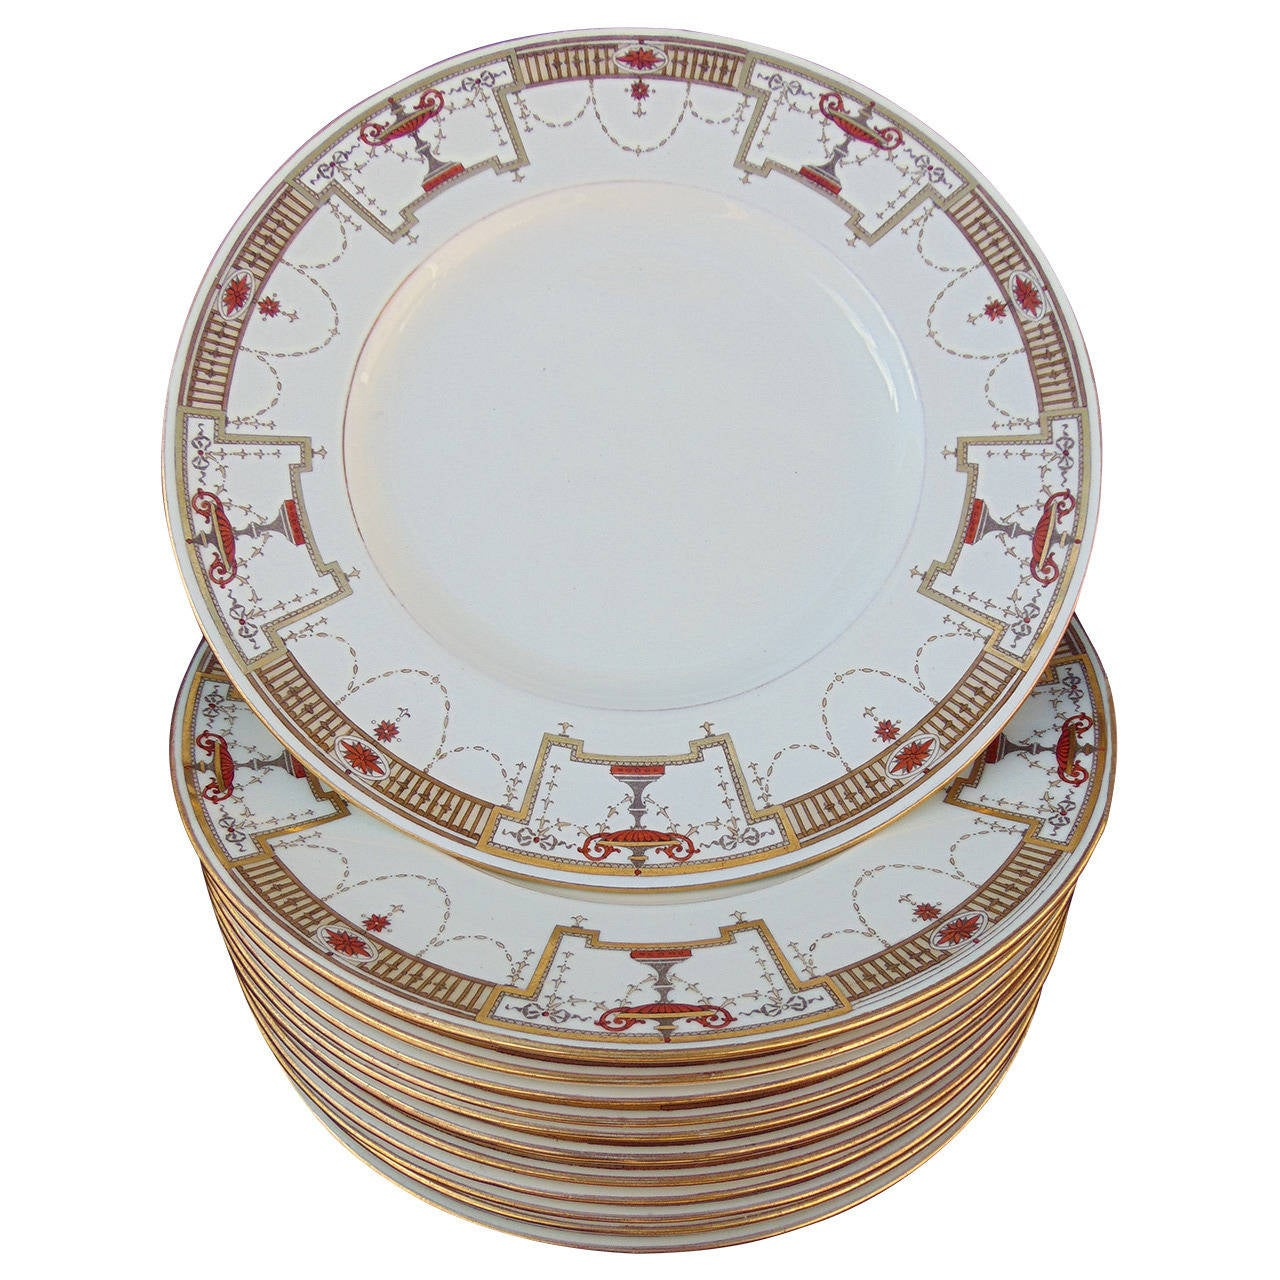 Antique Minton Porcelain Plates For Sale  sc 1 st  1stDibs & Tiffany and Co. Antique Minton Porcelain Plates For Sale at 1stdibs